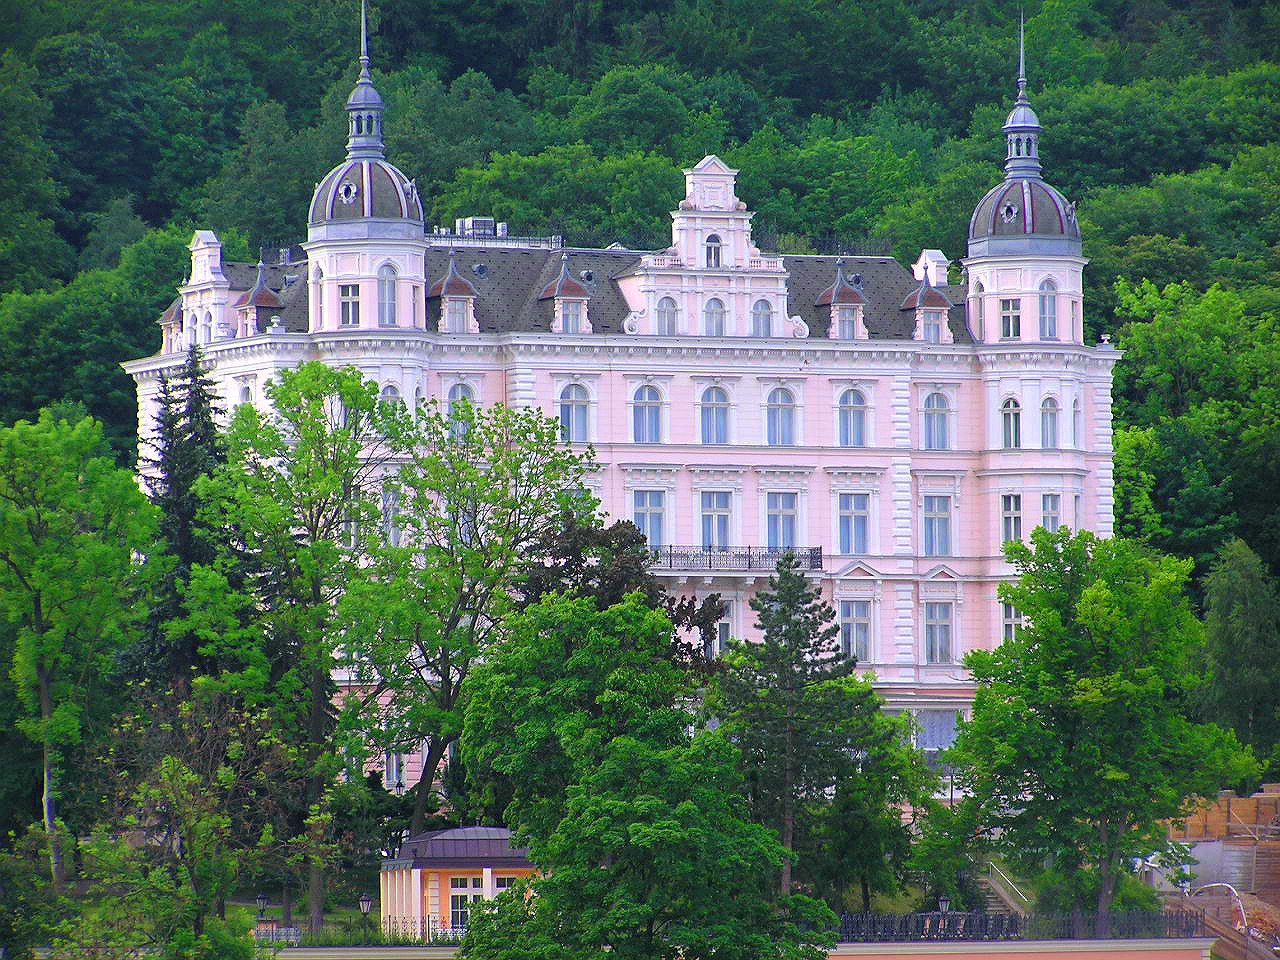 The grand budapest hotel wikiwand for Hotel budapest